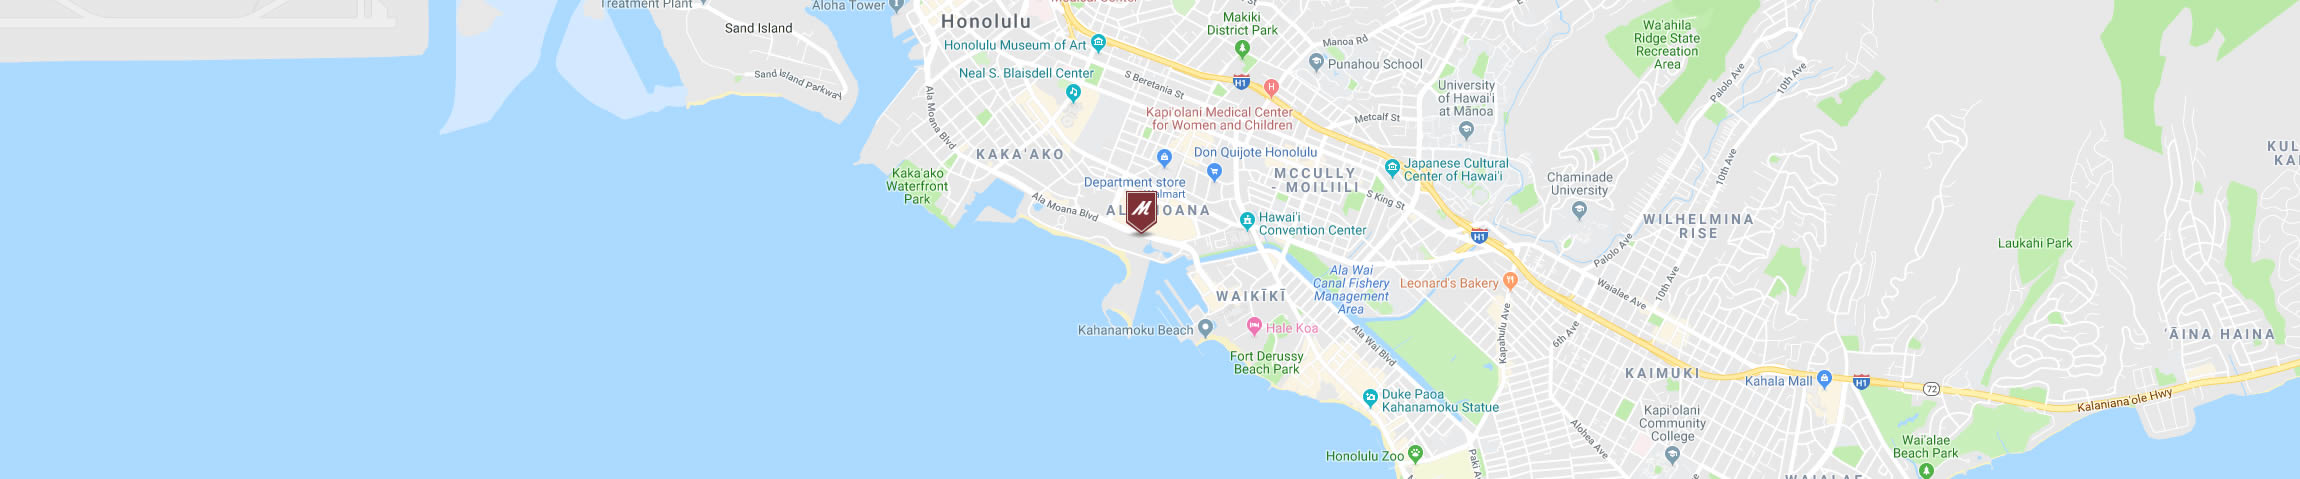 Google Map Image for the Romano's Macaroni Grill Honolulu Location